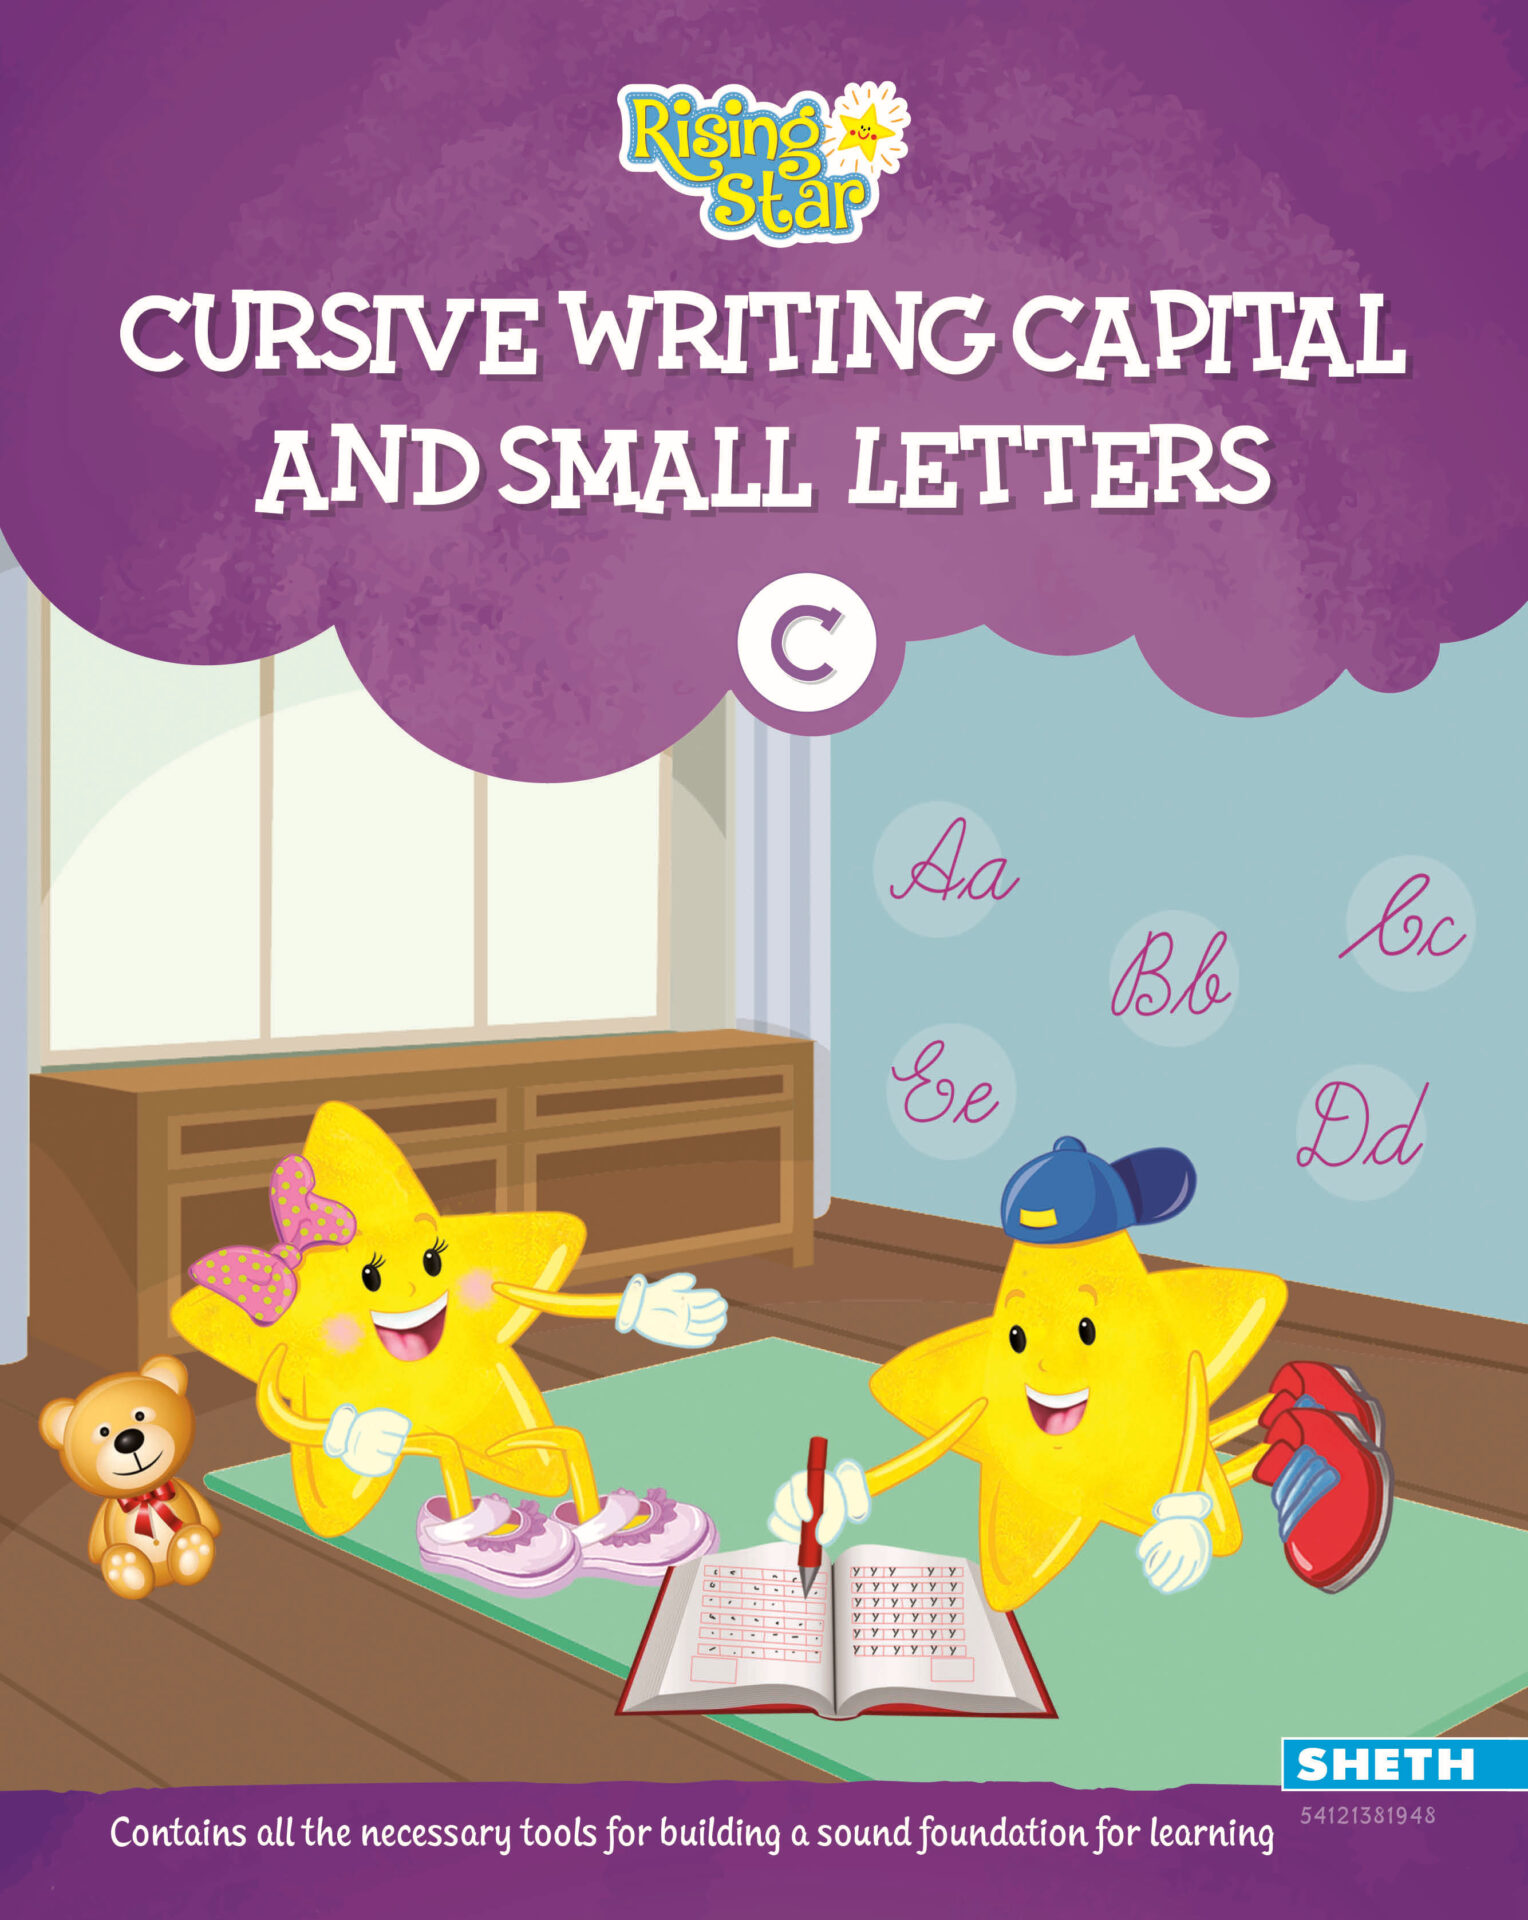 Rising Star Cursive Writing Capital and Small Letters C 1 1